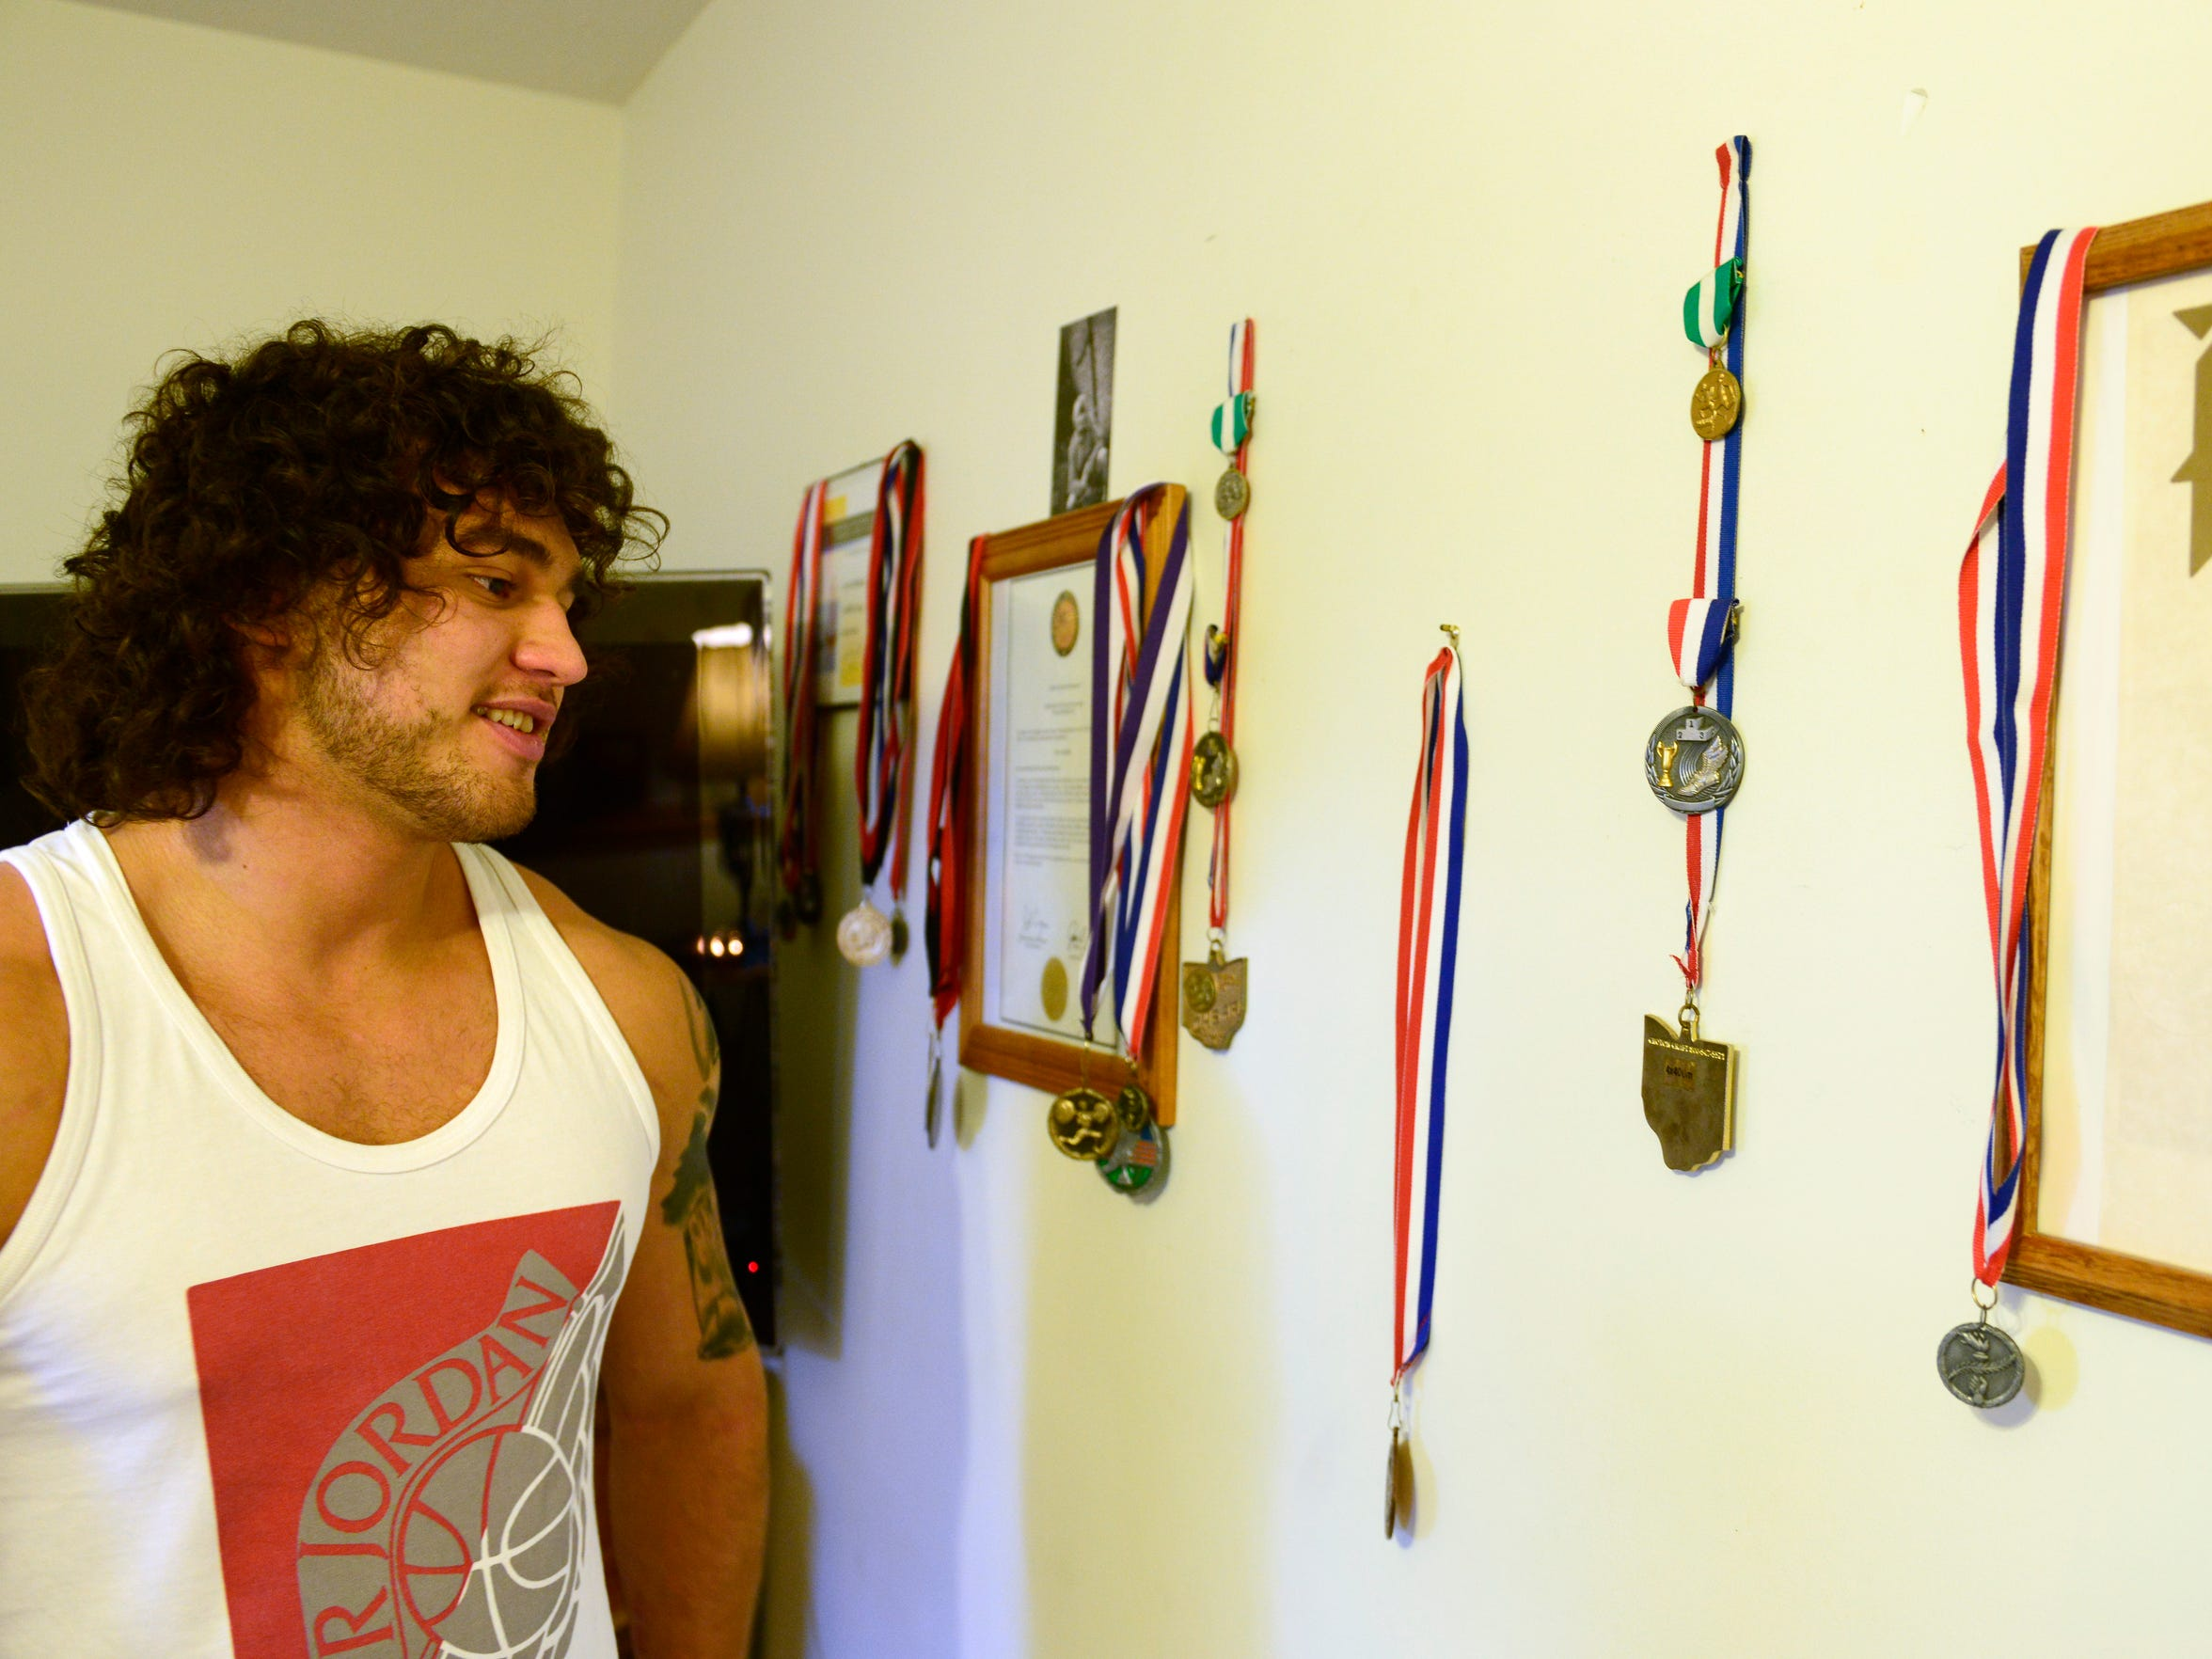 Richie Webber looks at the medals he won at the state high school track championship, and for other sports, hanging on the wall in his home. He had opportunities for college scholarships, but lost them because he failed a school drug test and was kicked off the team.